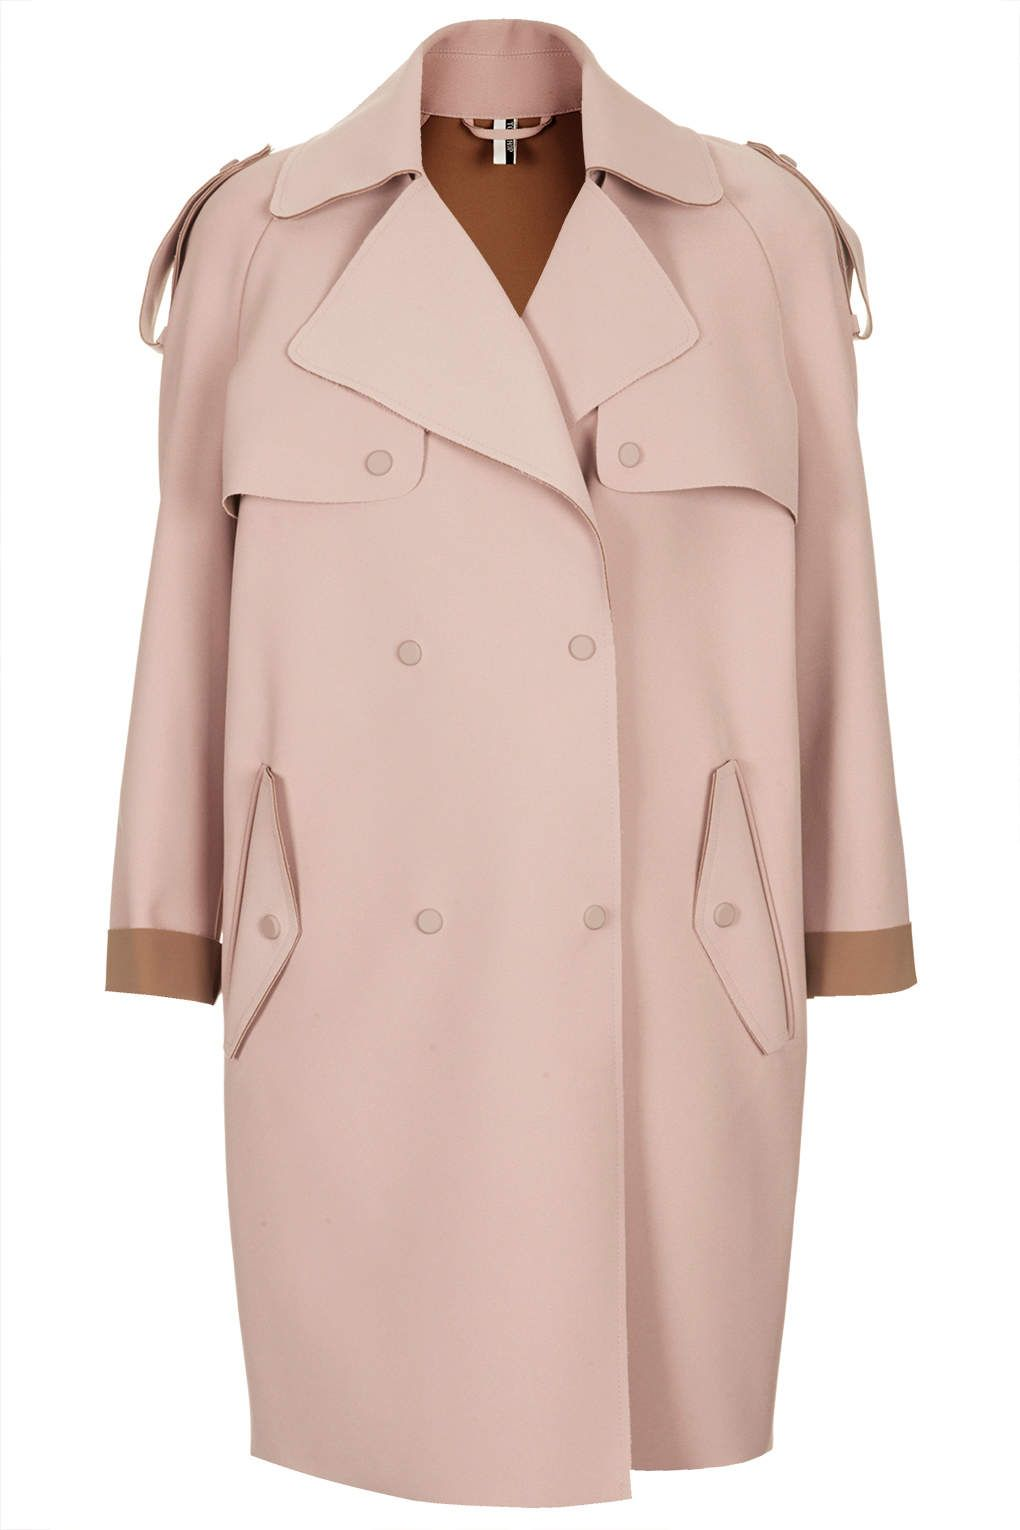 Women's Pink Bonded Trench Coat | Coats, Topshop and Trench